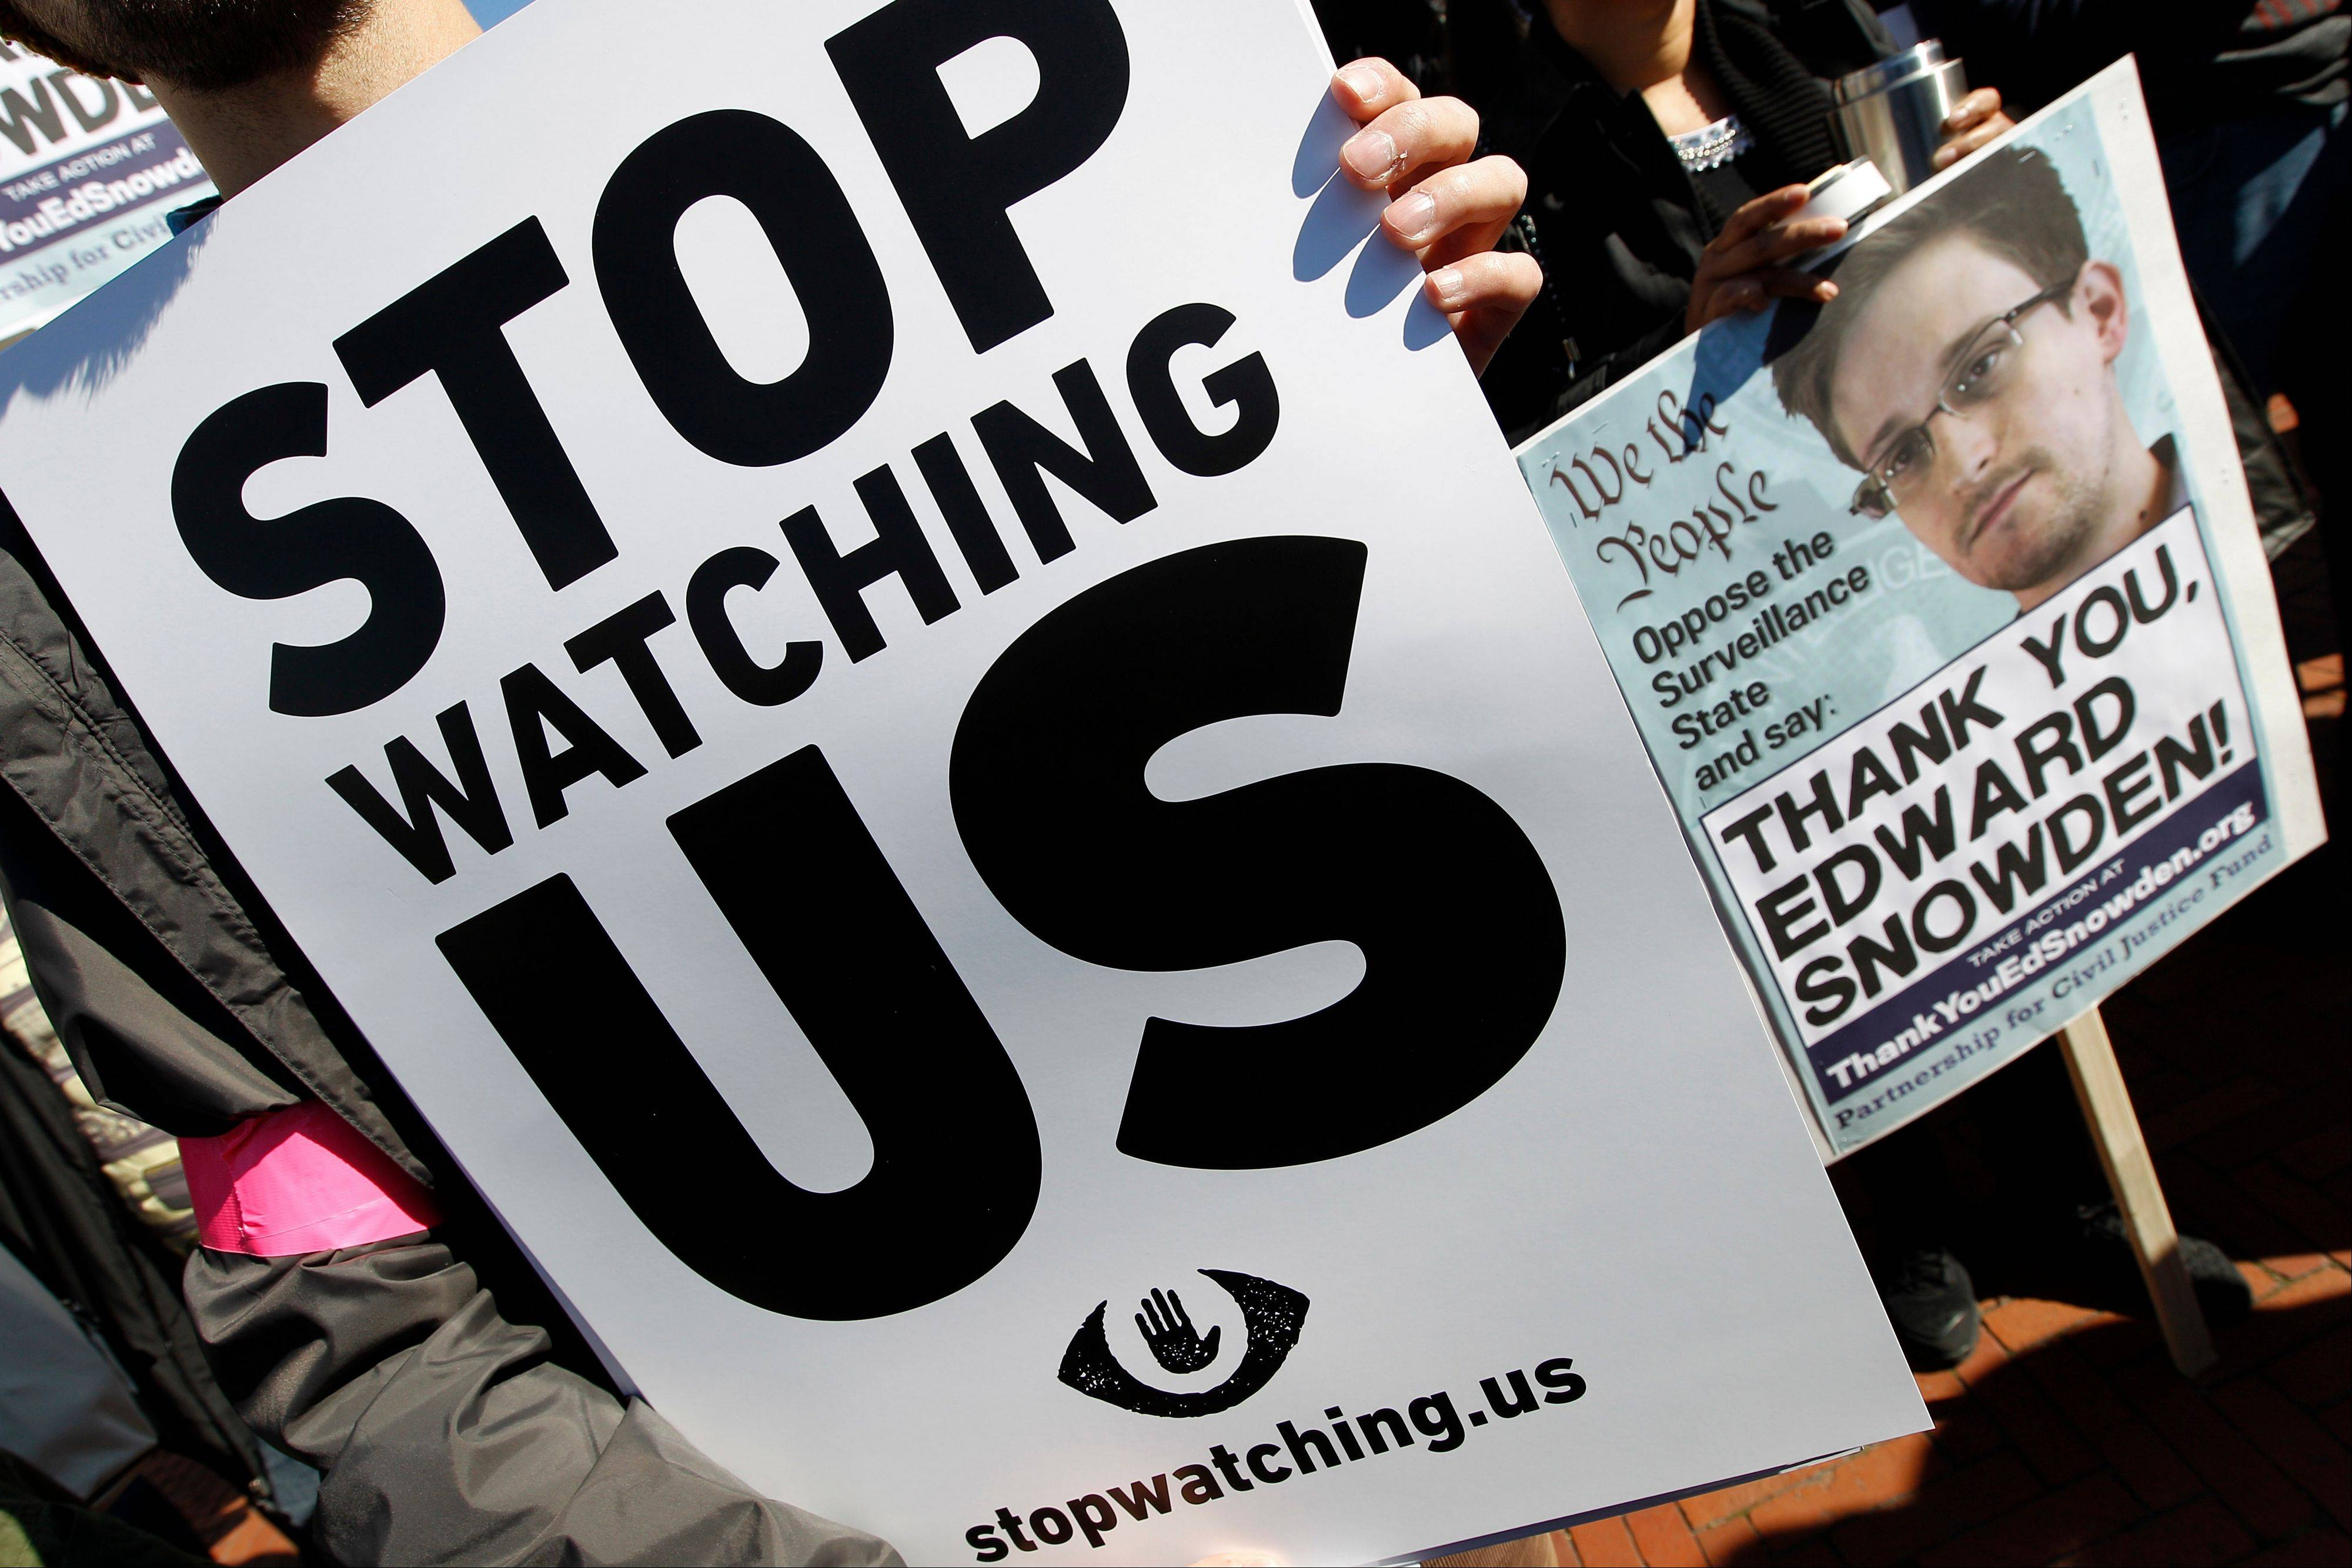 Demonstrators protest outside of the U.S. Capitol in Washington during a rally to demand that the U.S. Congress investigate the National Security Agency's mass surveillance programs Saturday, Oct. 26, 2013.